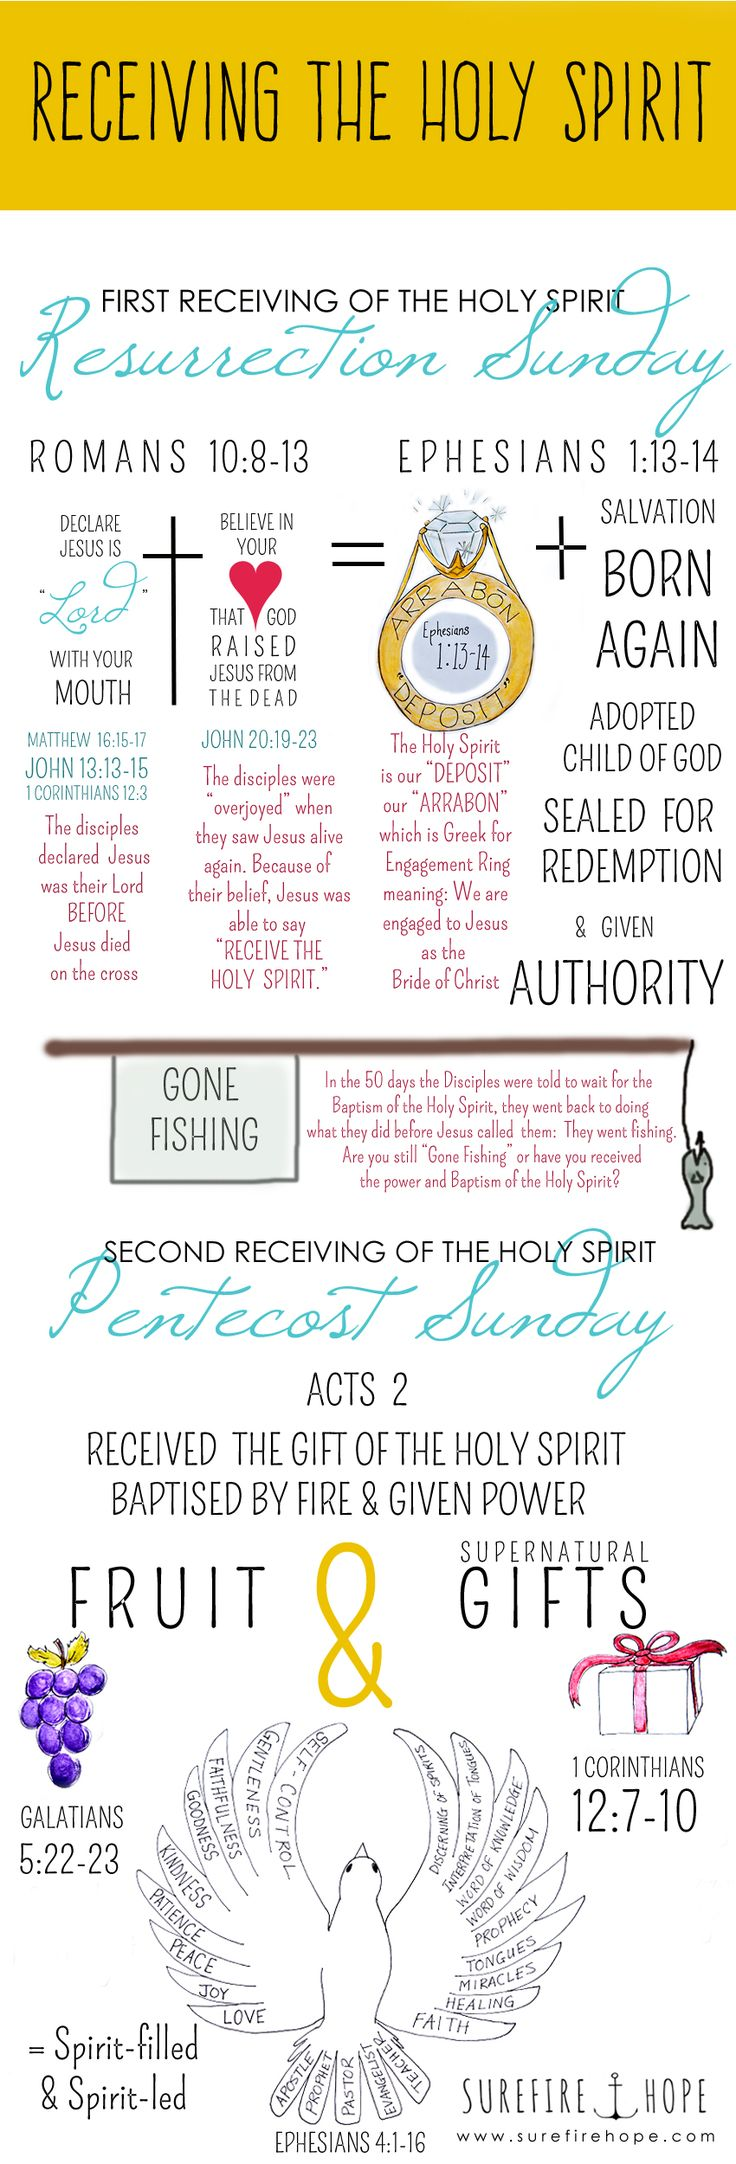 "Receiving the Holy Spirit - Surefire Hope - Bible Study Blog |   www.surefirehope.com   |  Jesus told the disciples to ""Receive the Holy Spirit"" (John 20:19-23) but He also told them wait for the Baptism of the Holy Spirit (Luke 24:49, Acts 1:4-5).  So what did they receive when Jesus blew on them on Resurrection Sunday, and how is that receiving of the Holy Spirit different than what they were told to wait for?  God's Word shows us that there are two distinct receivings of the Holy Spirit…"